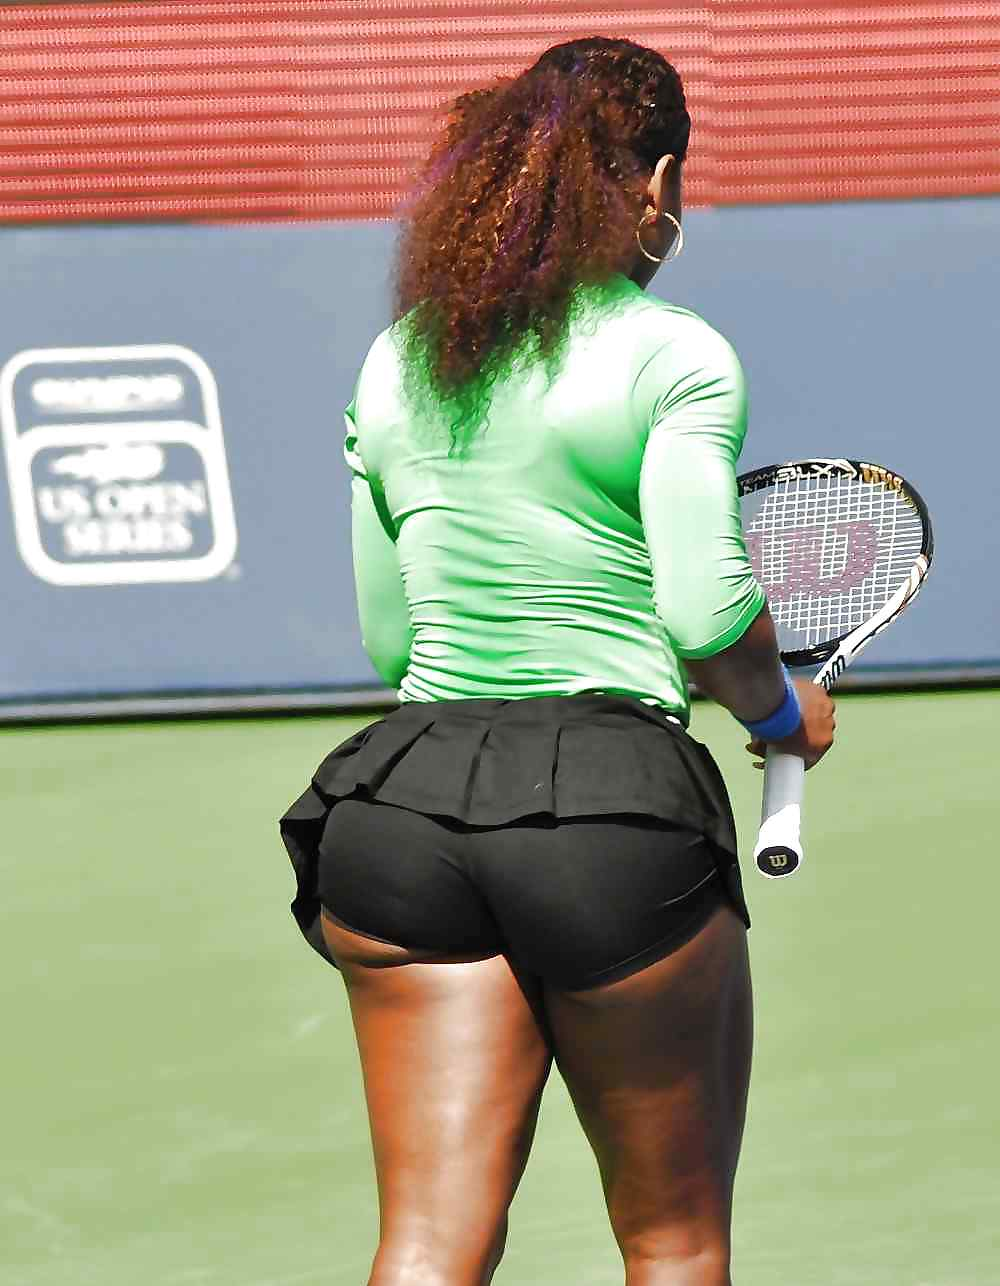 Serena williams divides opinion with tight